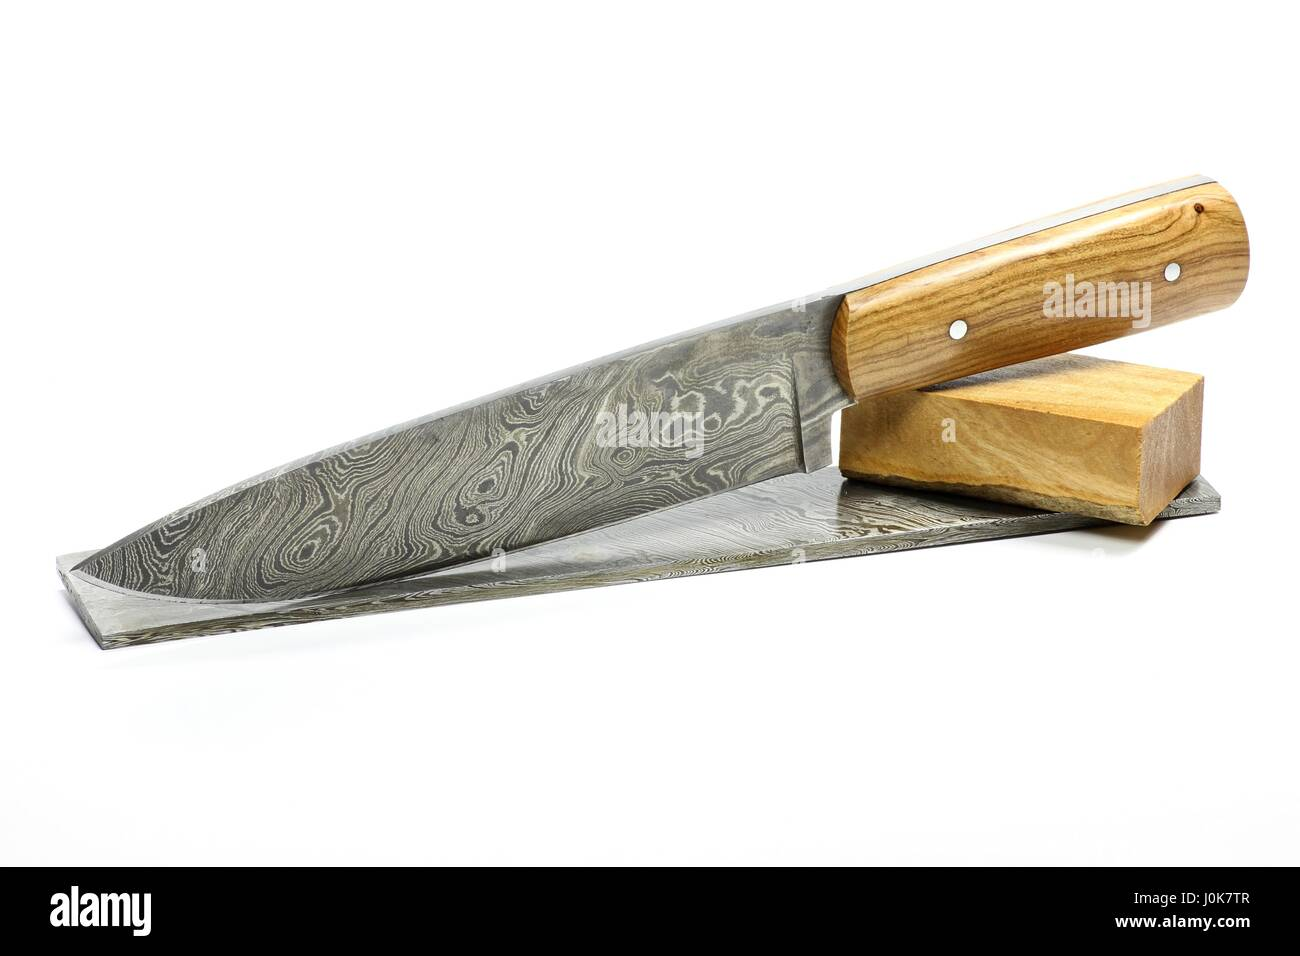 handmade damascus kitchen knife with raw materials isolated on white background Stock Photo